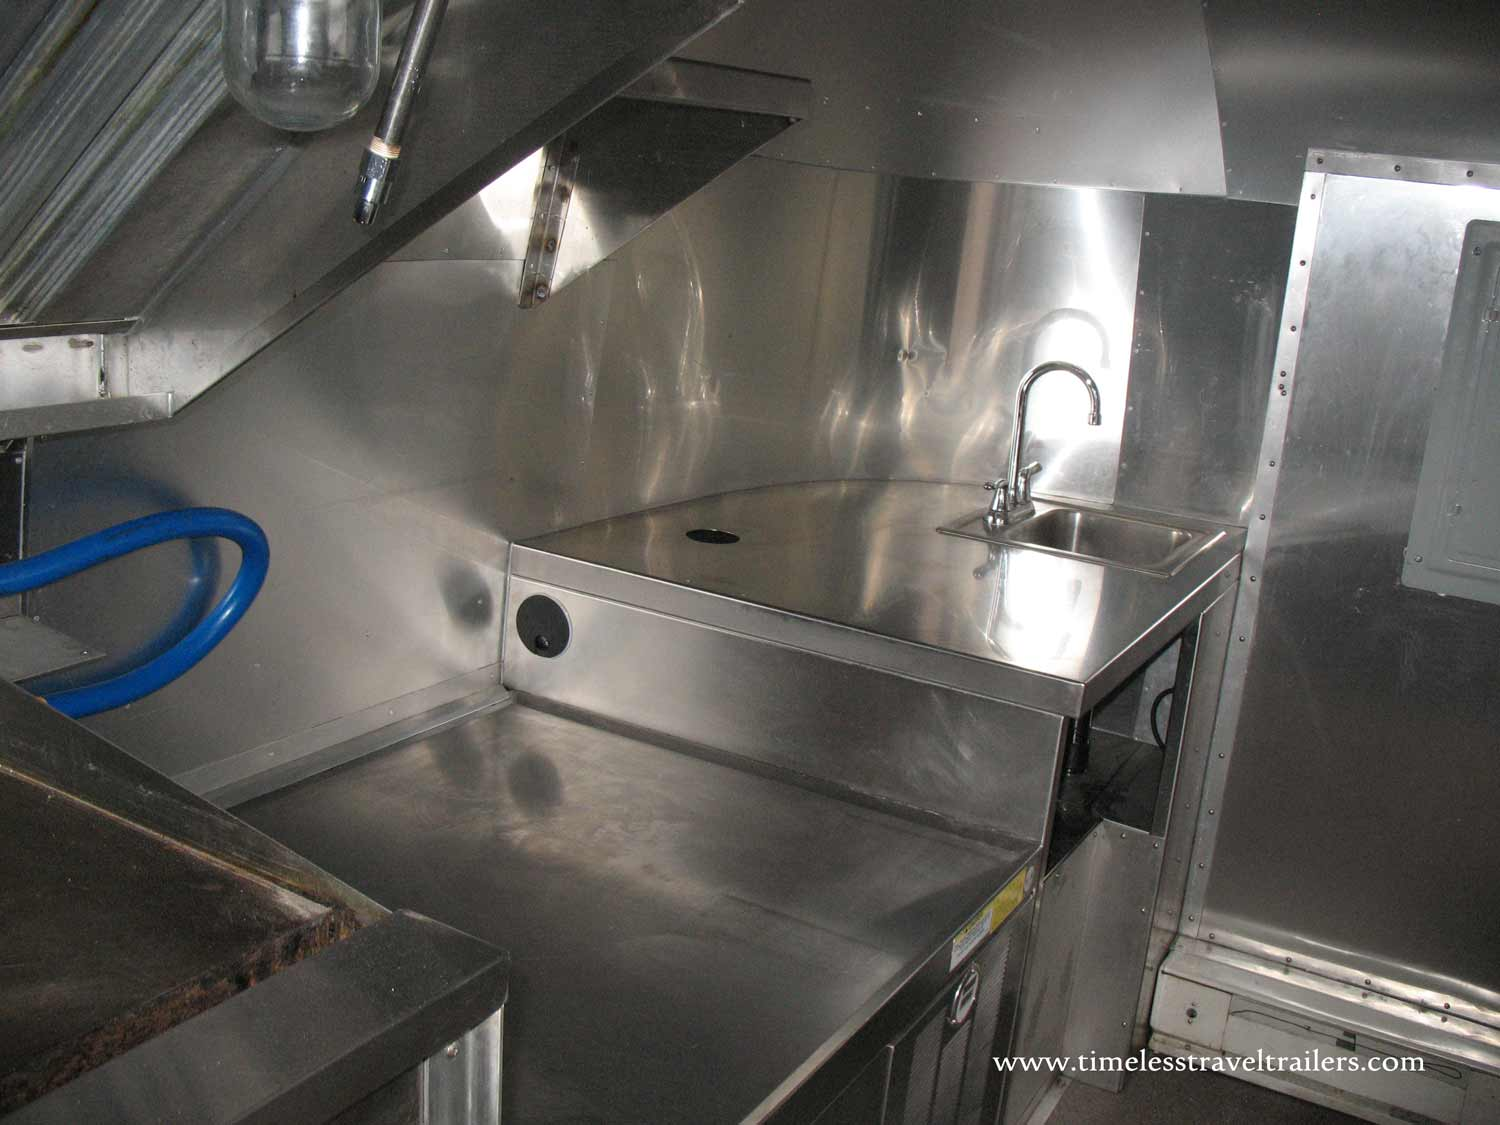 splash guard kitchen sink inventory high end in an airstream